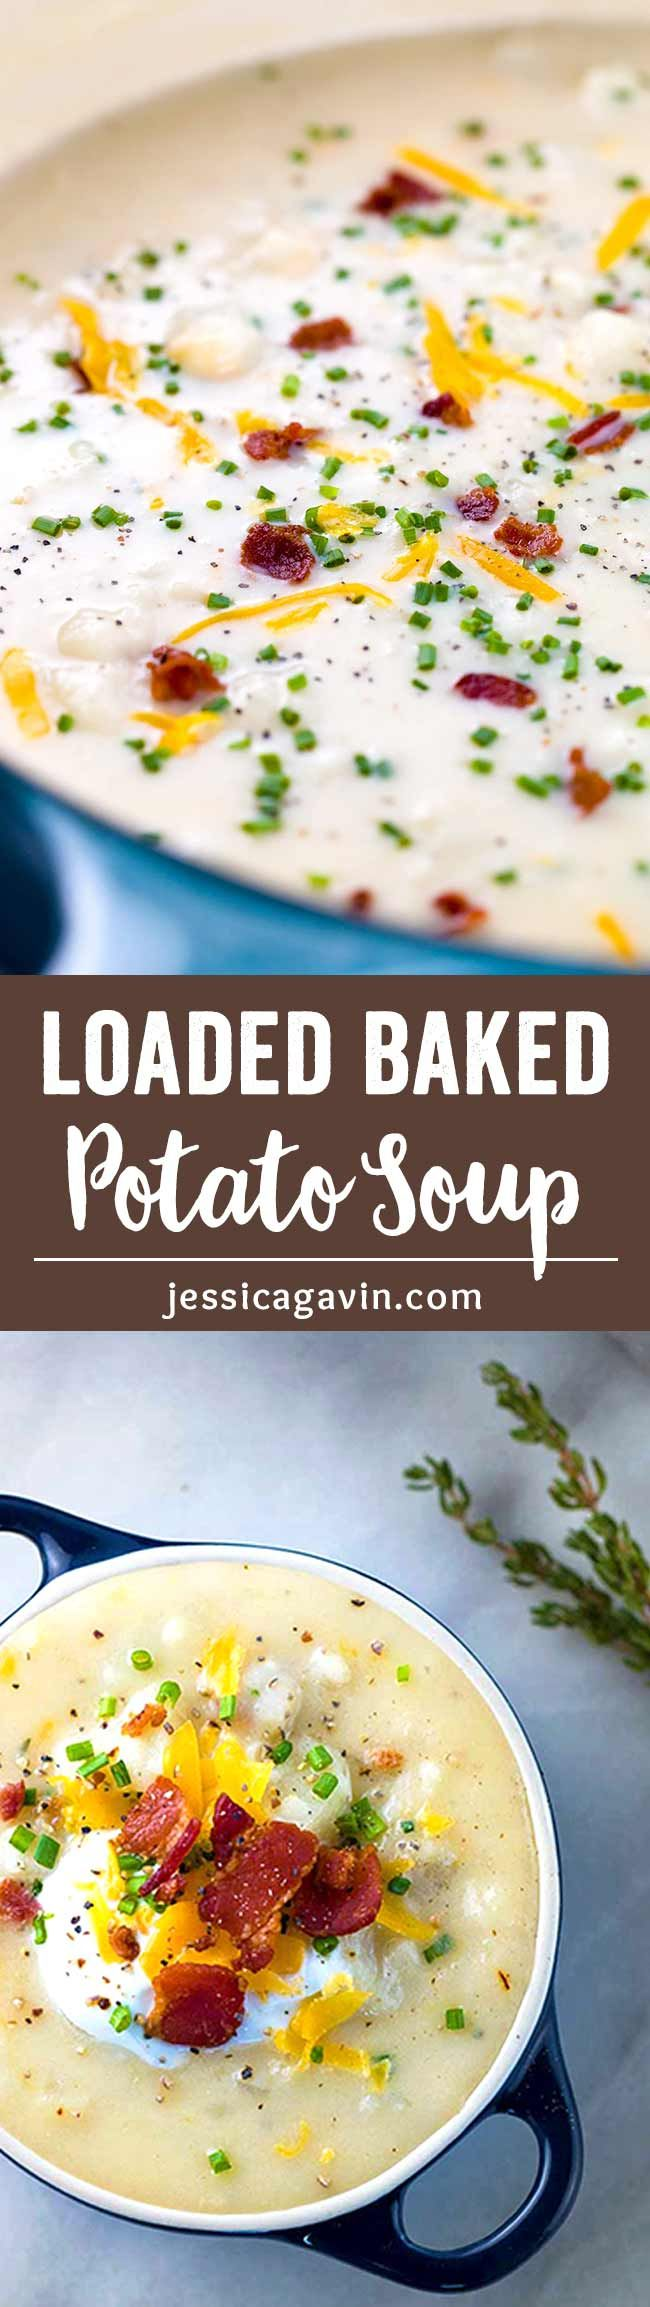 Loaded Baked Potato Soup with Bacon - Each spoonful is packed with savory bacon, potatoes, cheese and fresh herbs. via @foodiegavin